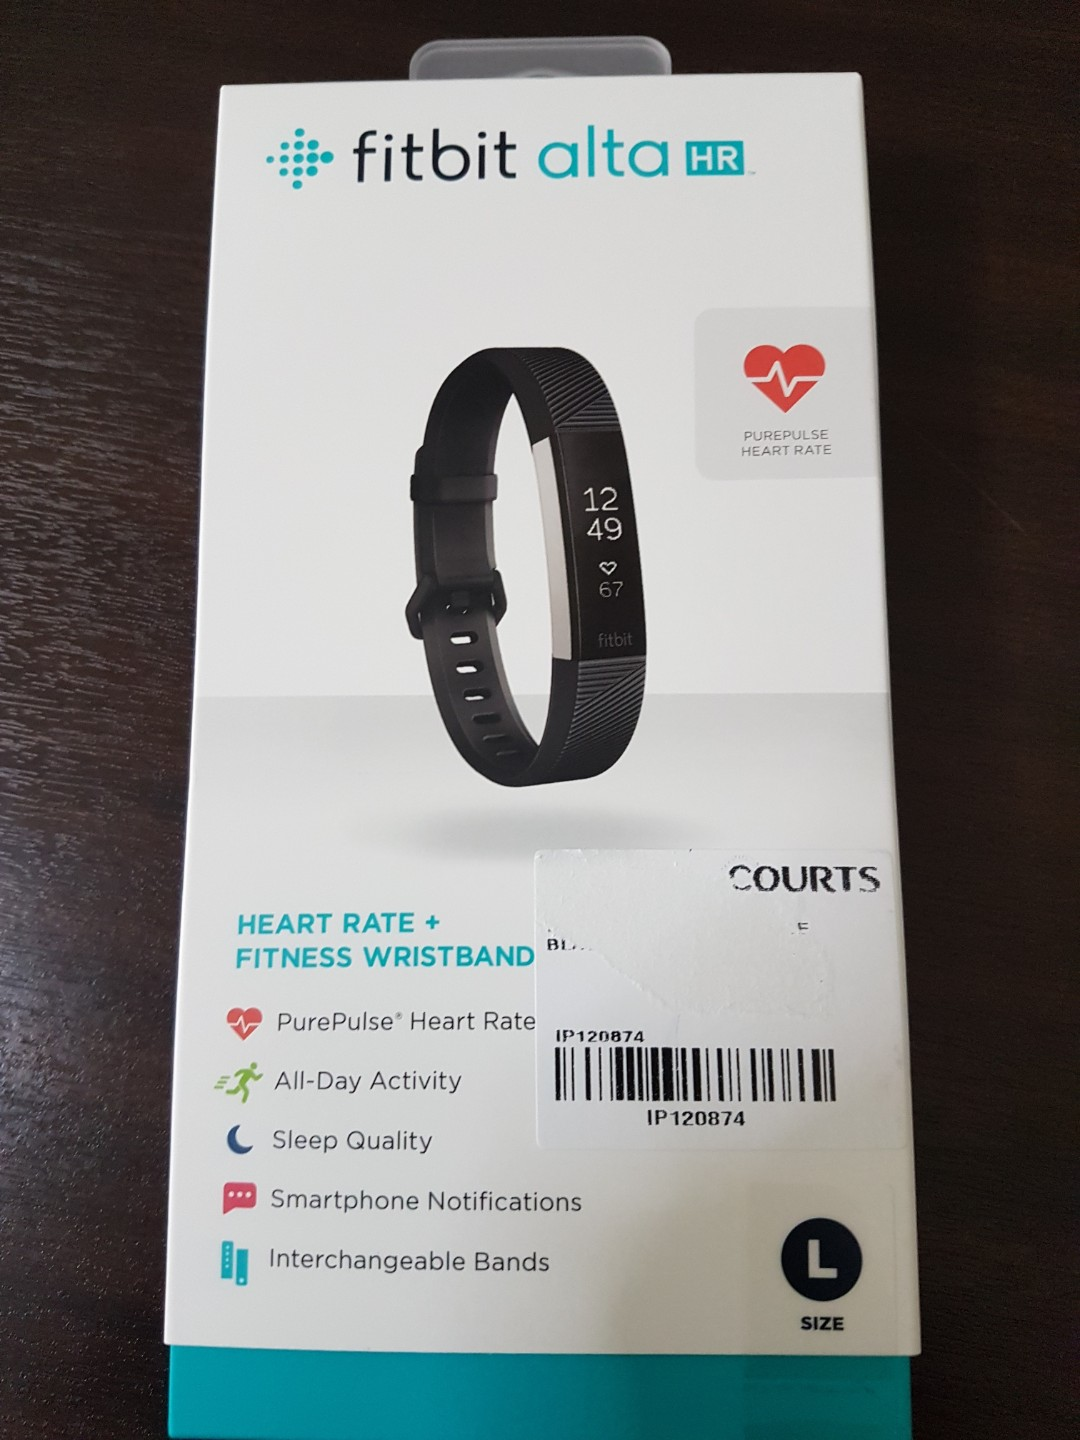 Fitness Wristband Fitbit Alta Hr Electronics Others On Carousell Smartwatch Small Black Stainless Steel Photo